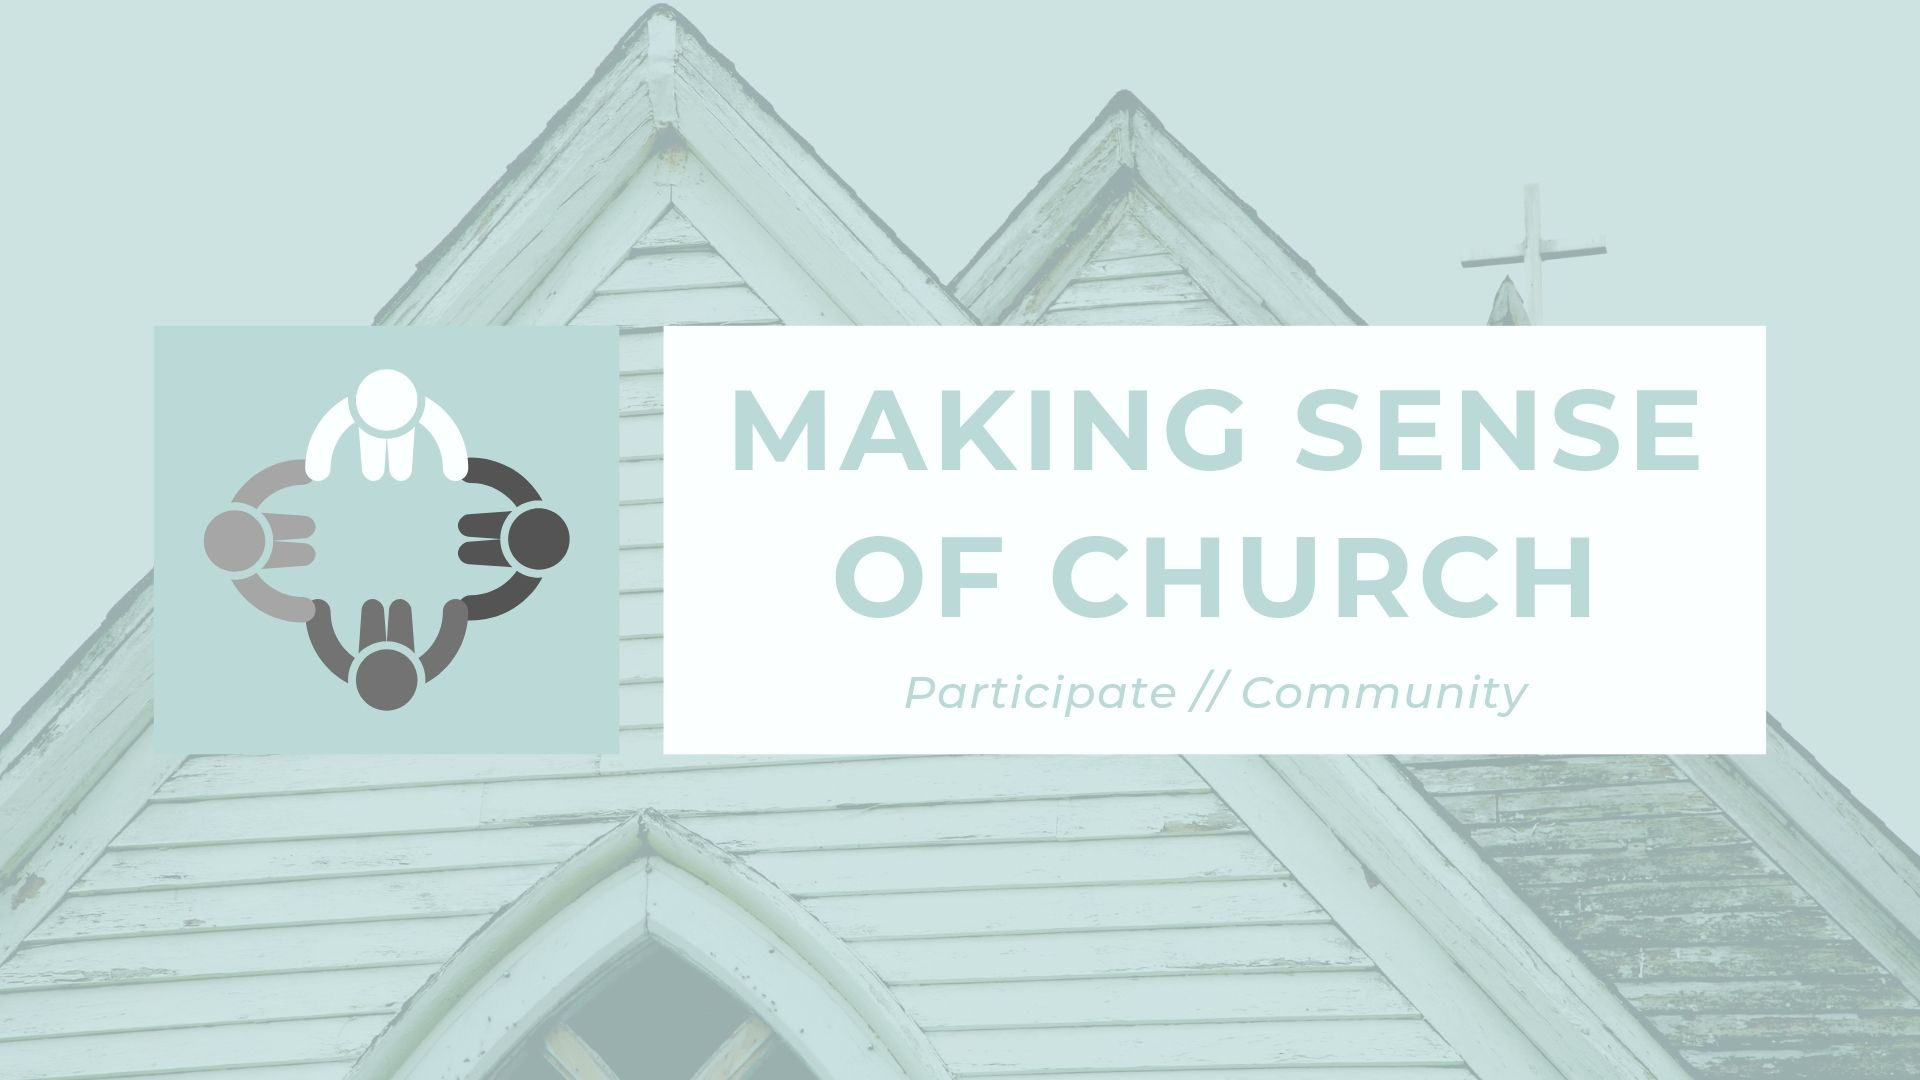 Making Sense of Church Title 2 (Participate).jpg